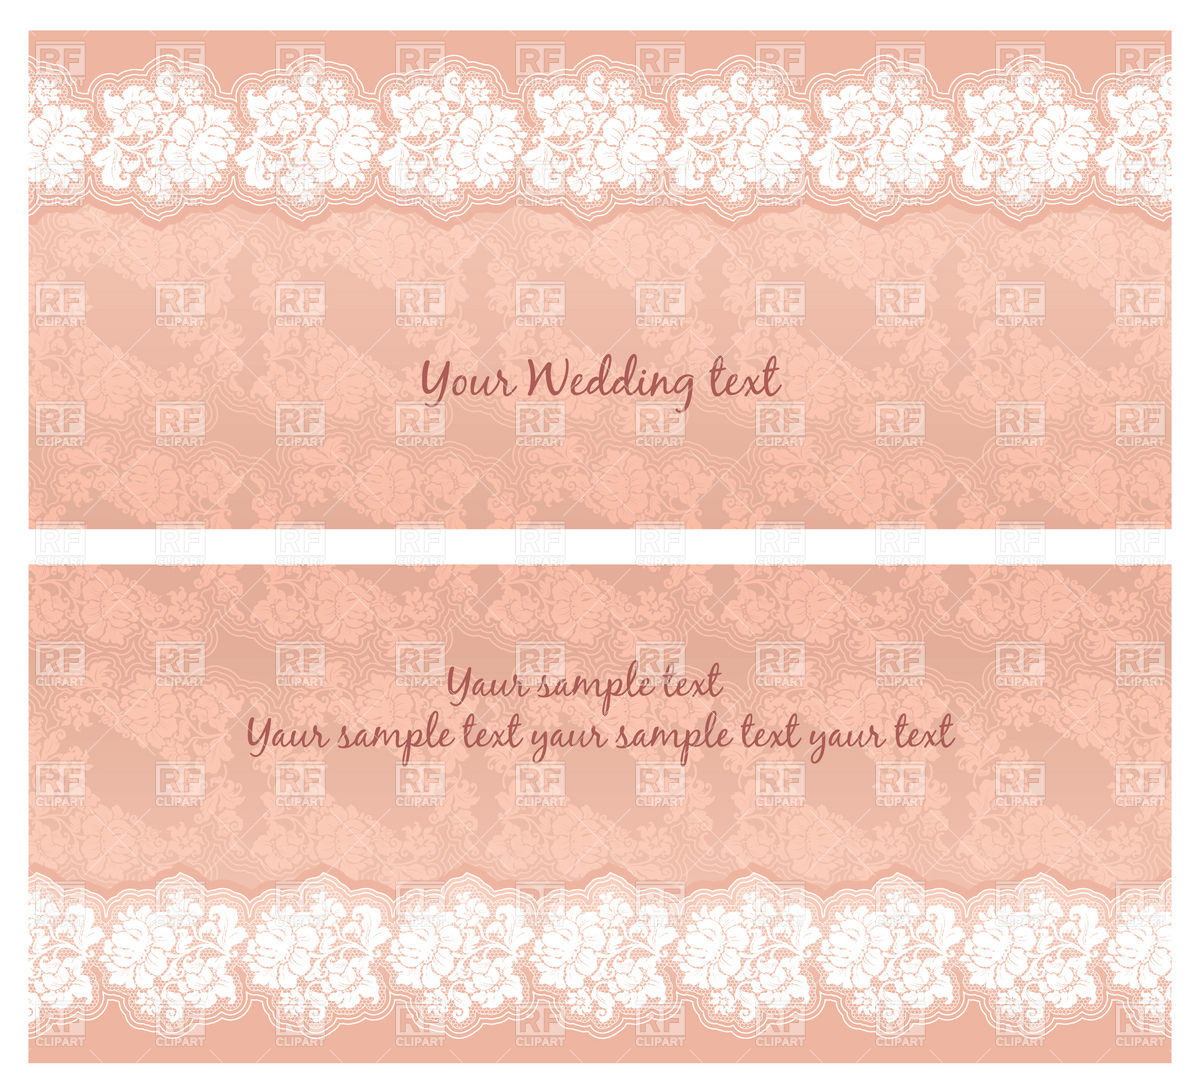 Pink Vintage Wedding Invitation With Floral Lace 18842 Backgrounds